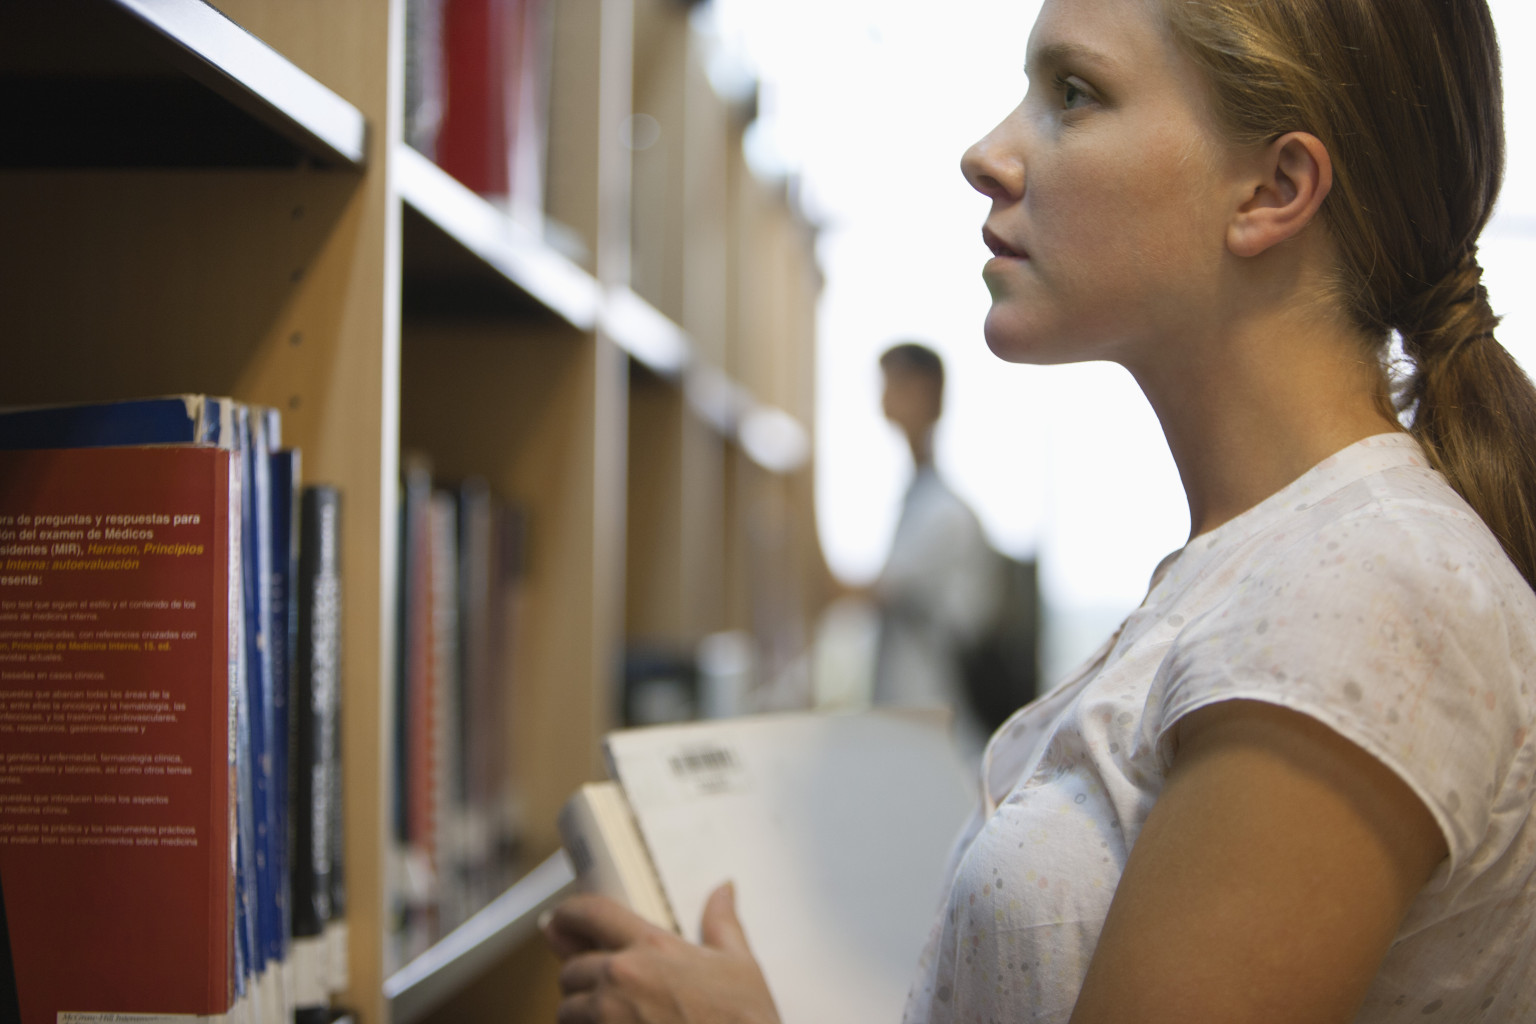 fun research topics for college Studentsassignmenthelpcom create unique and interesting research paper topics for the students when it comes to researching and writing research paper topics, this is something that many scholars struggle with.